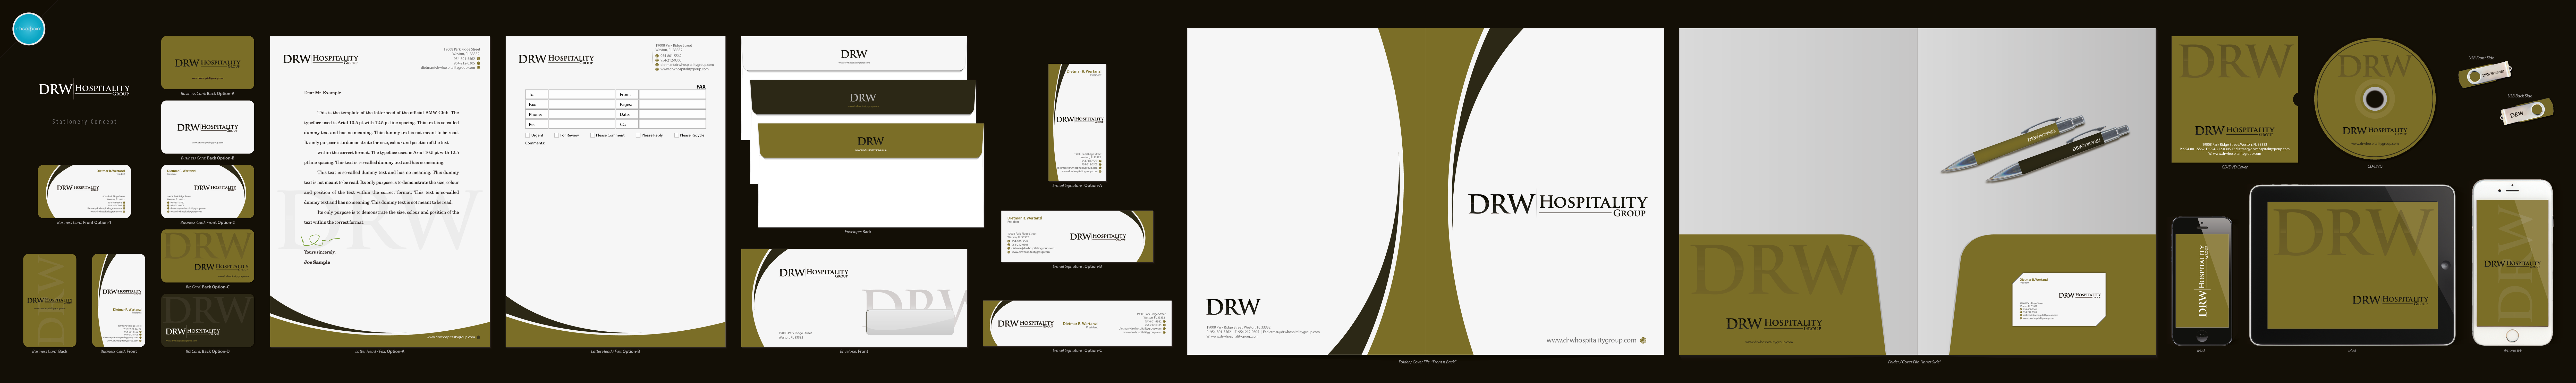 Stationery and Business Card design for Hospitality Company - Hospitality Industry